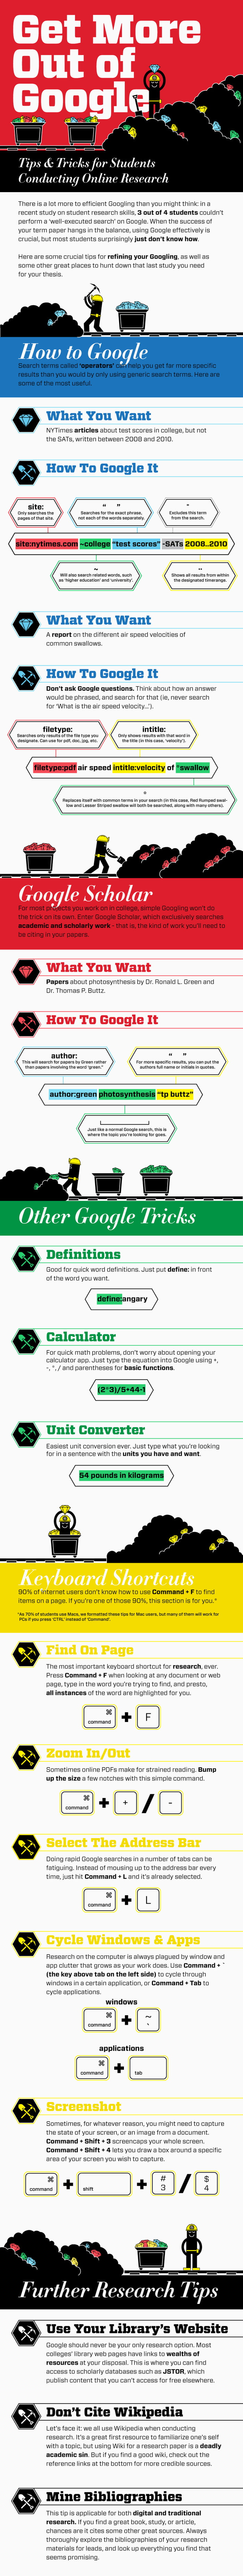 Learn how to get better Google search results